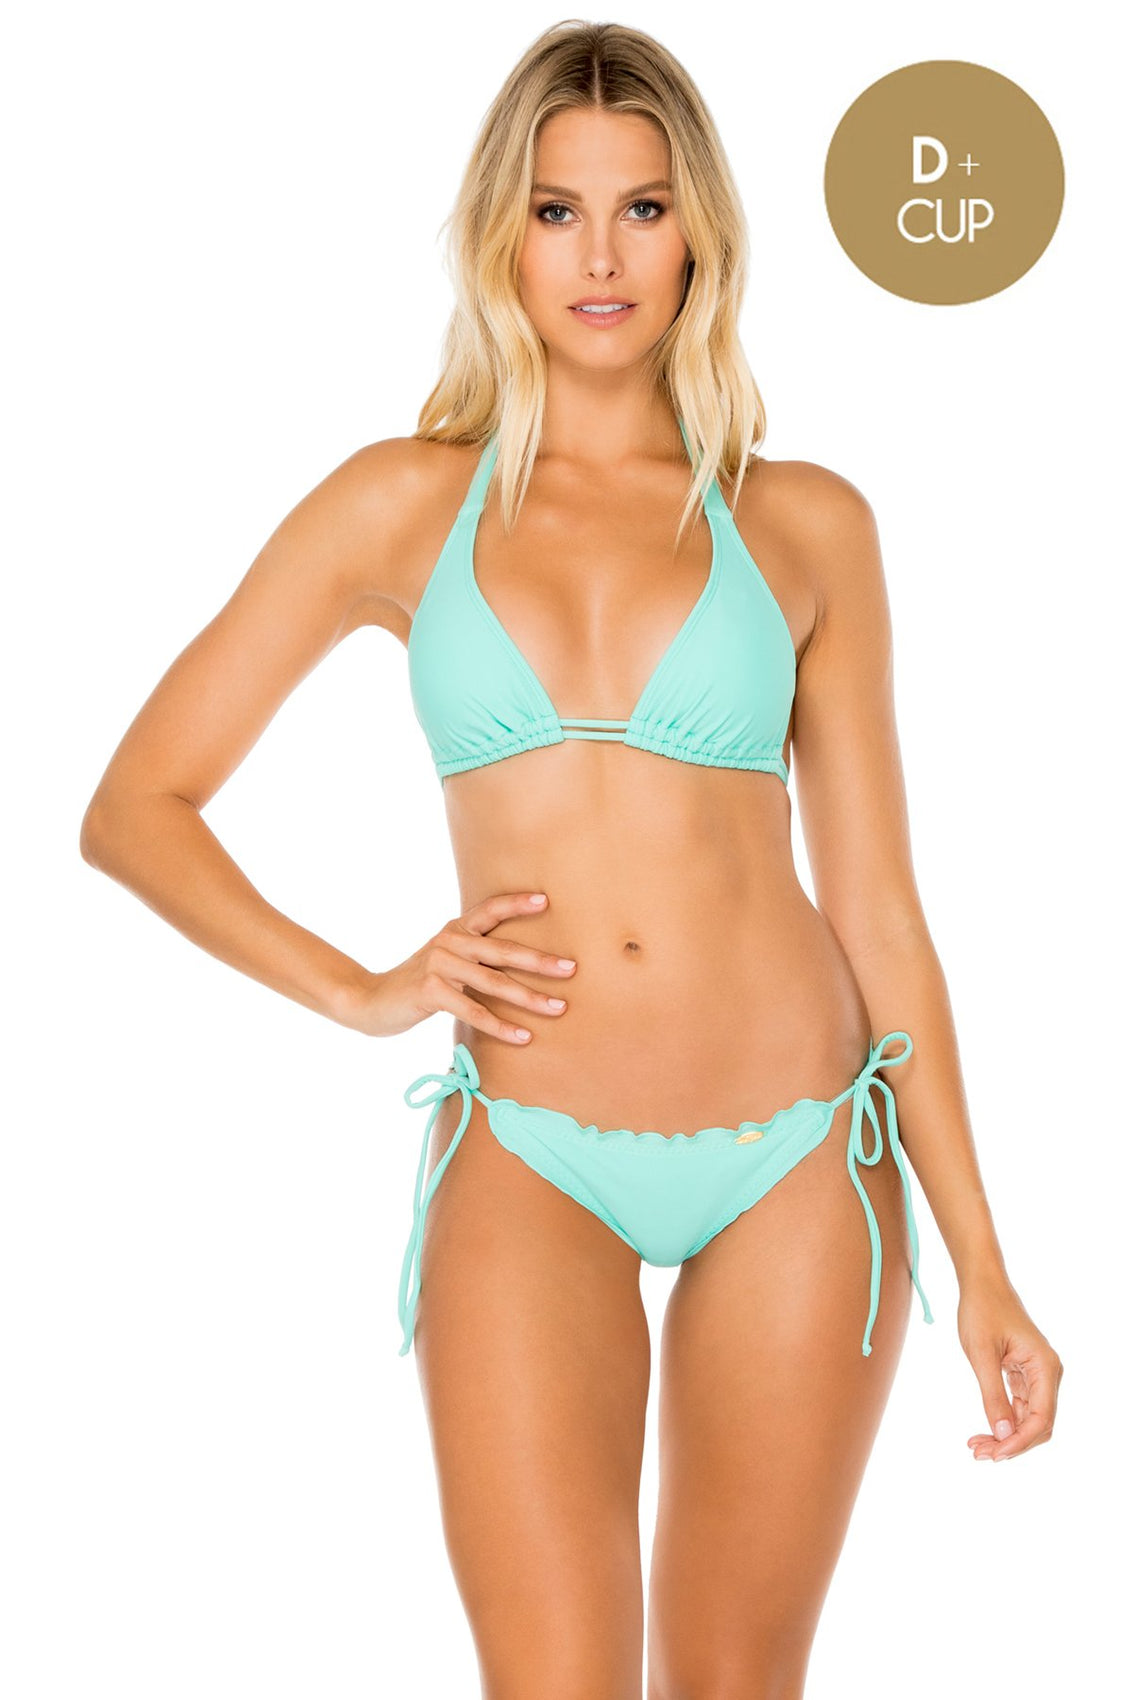 COSITA BUENA - Halter Triangle Top & Wavey Ruched Back Brazilian Tie Side Bottom • Agua Dulce